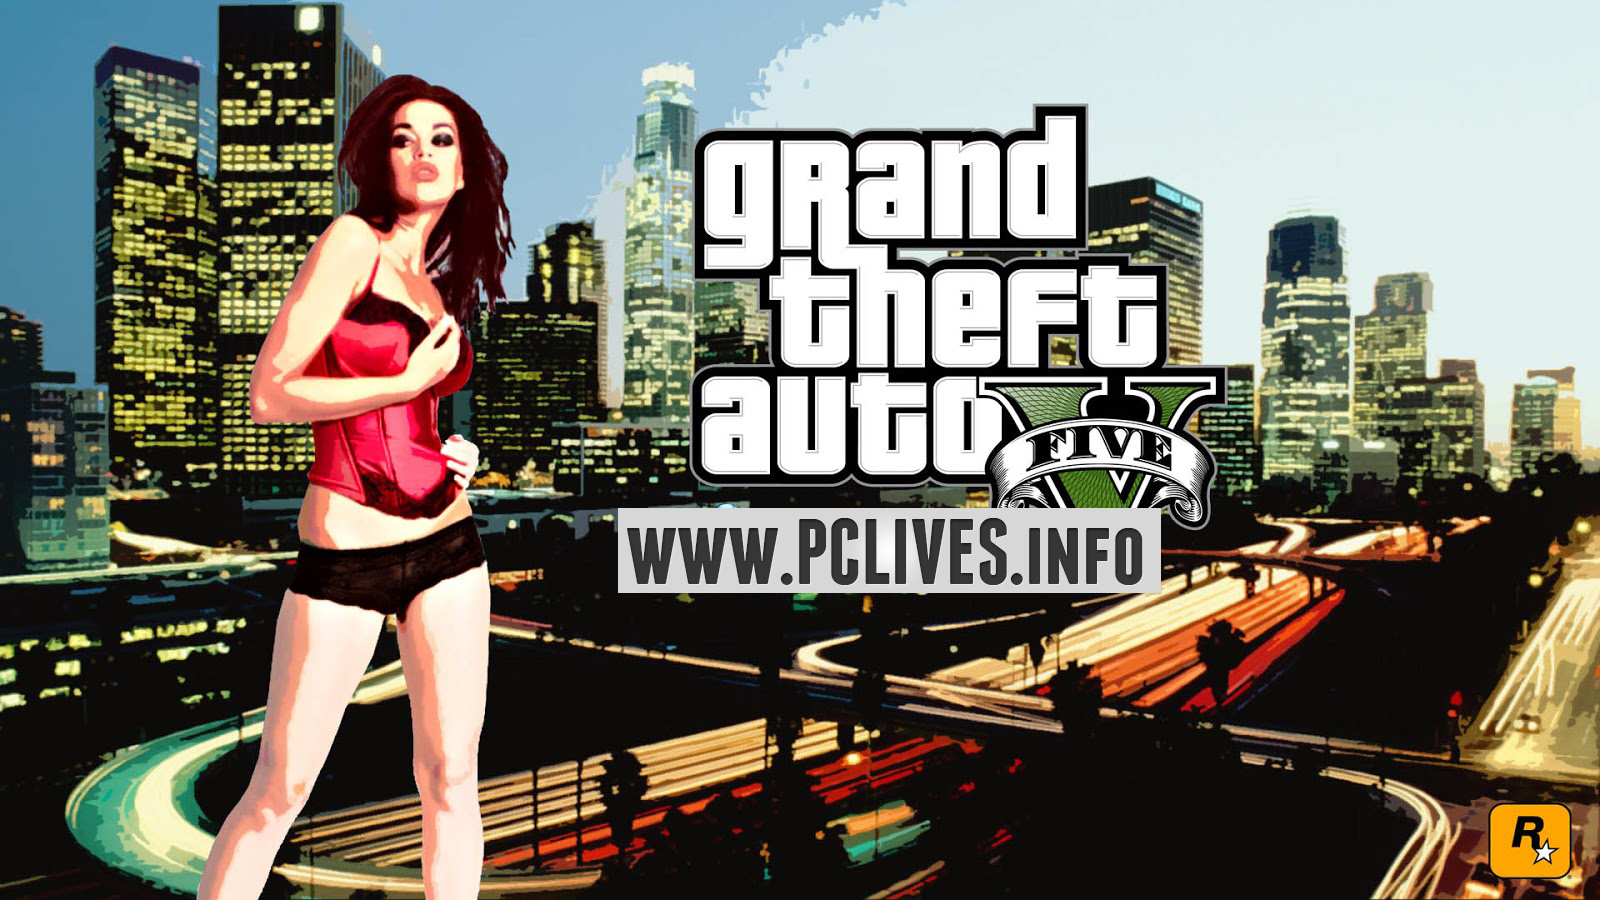 download gta5 for pc free full version windows 7